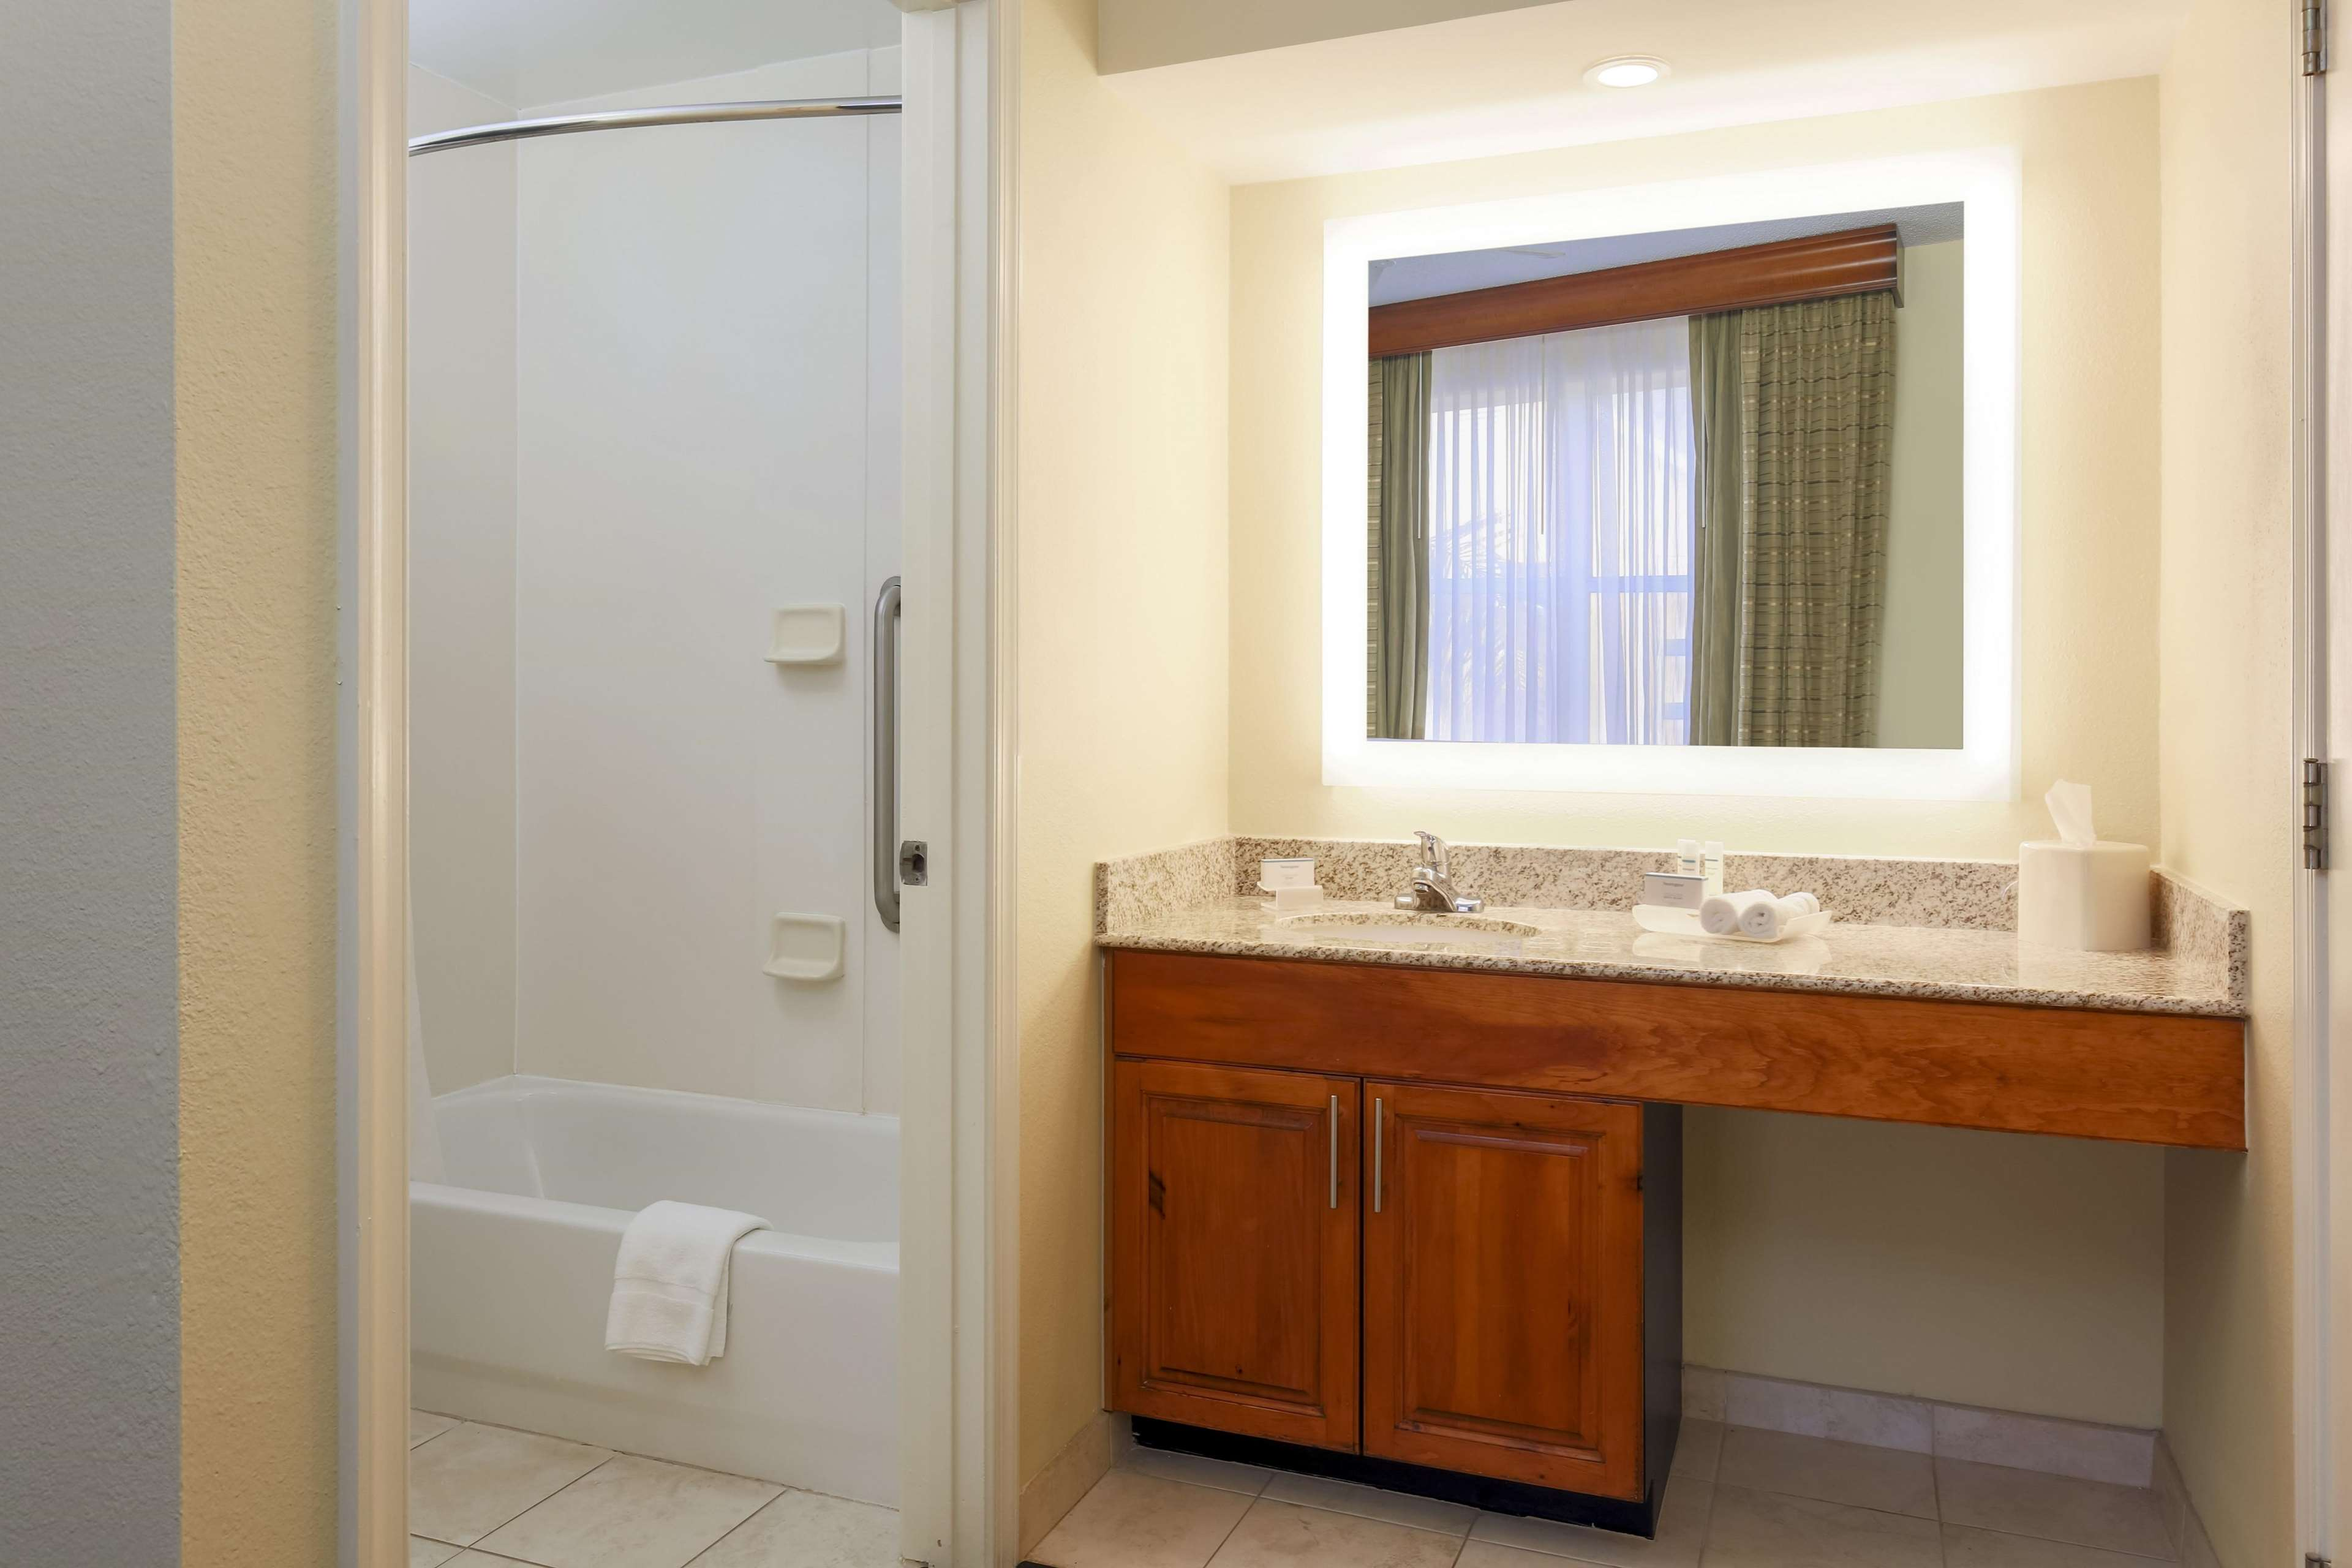 Homewood Suites by Hilton St. Petersburg Clearwater image 13